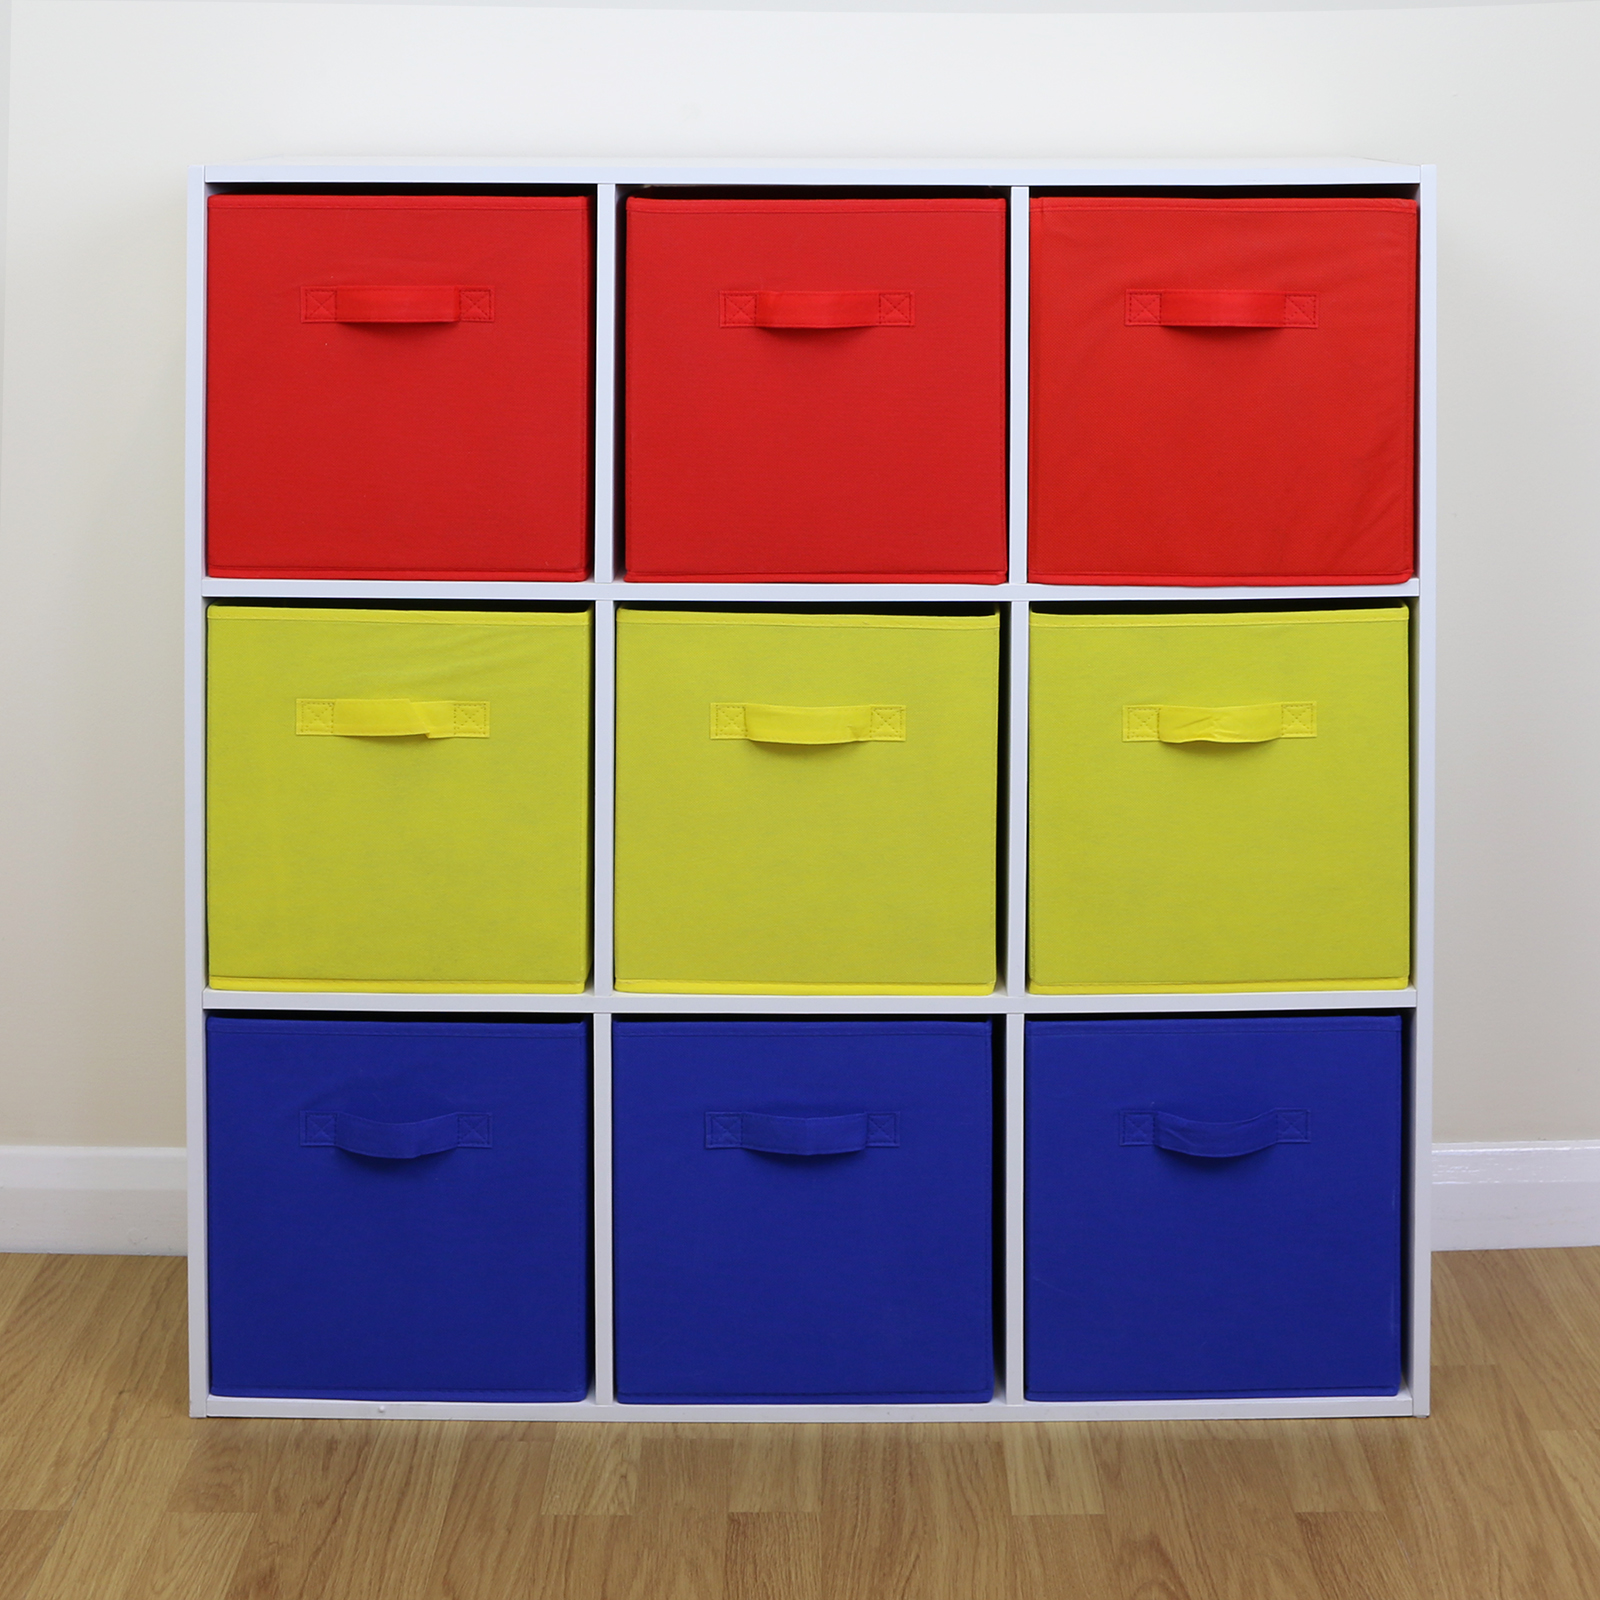 Details About White 3 Piece Storage Drawers Twin Bed Box: 9 Cube Kids Red Yellow & Blue Toy/Games Storage Unit Girls